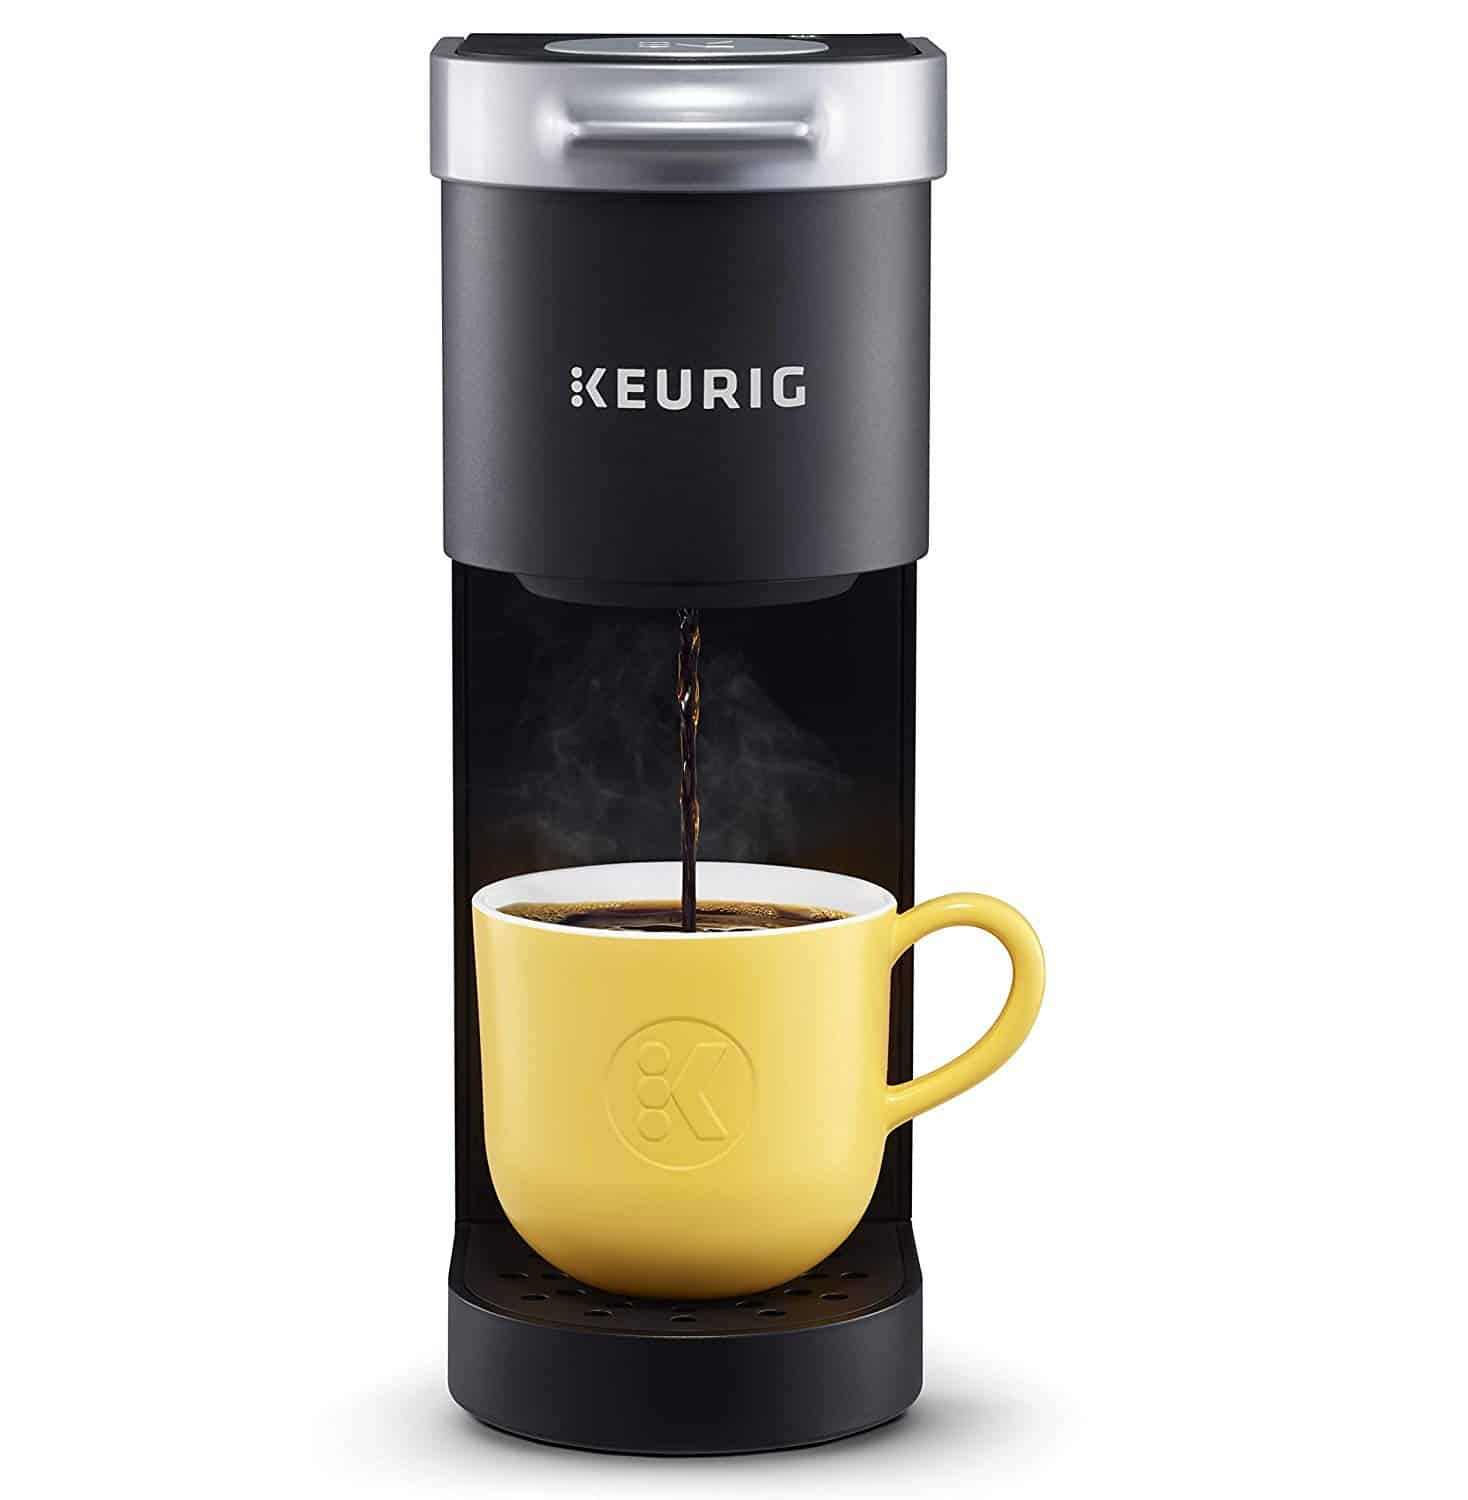 Keurig K-Mini Single Serve